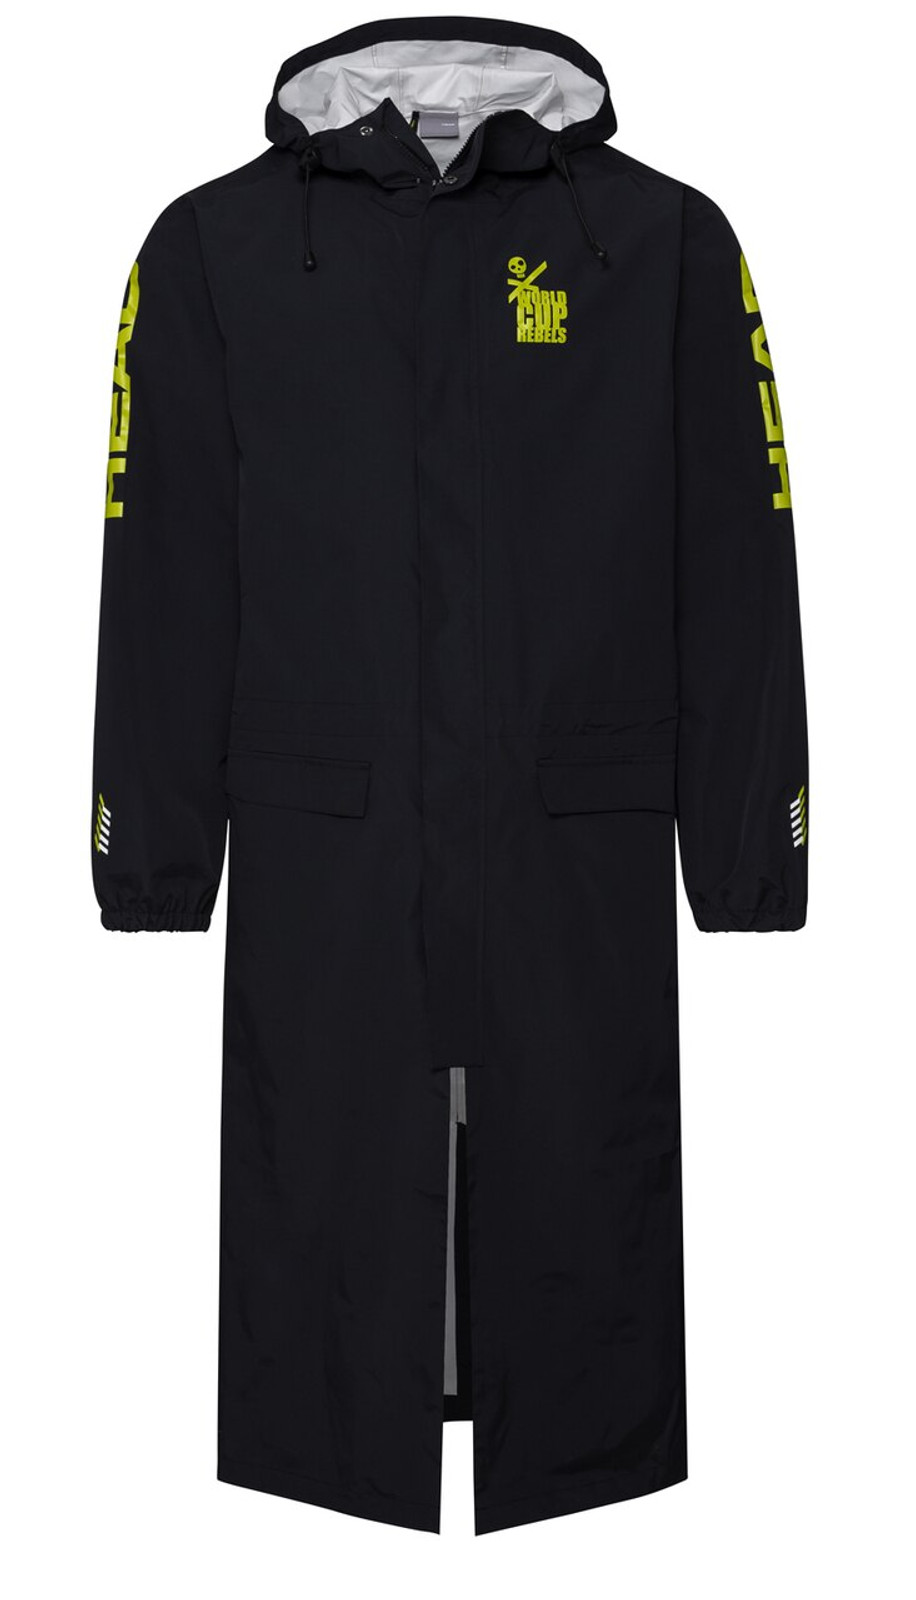 Head Rebels Race Rain Coat -19/20